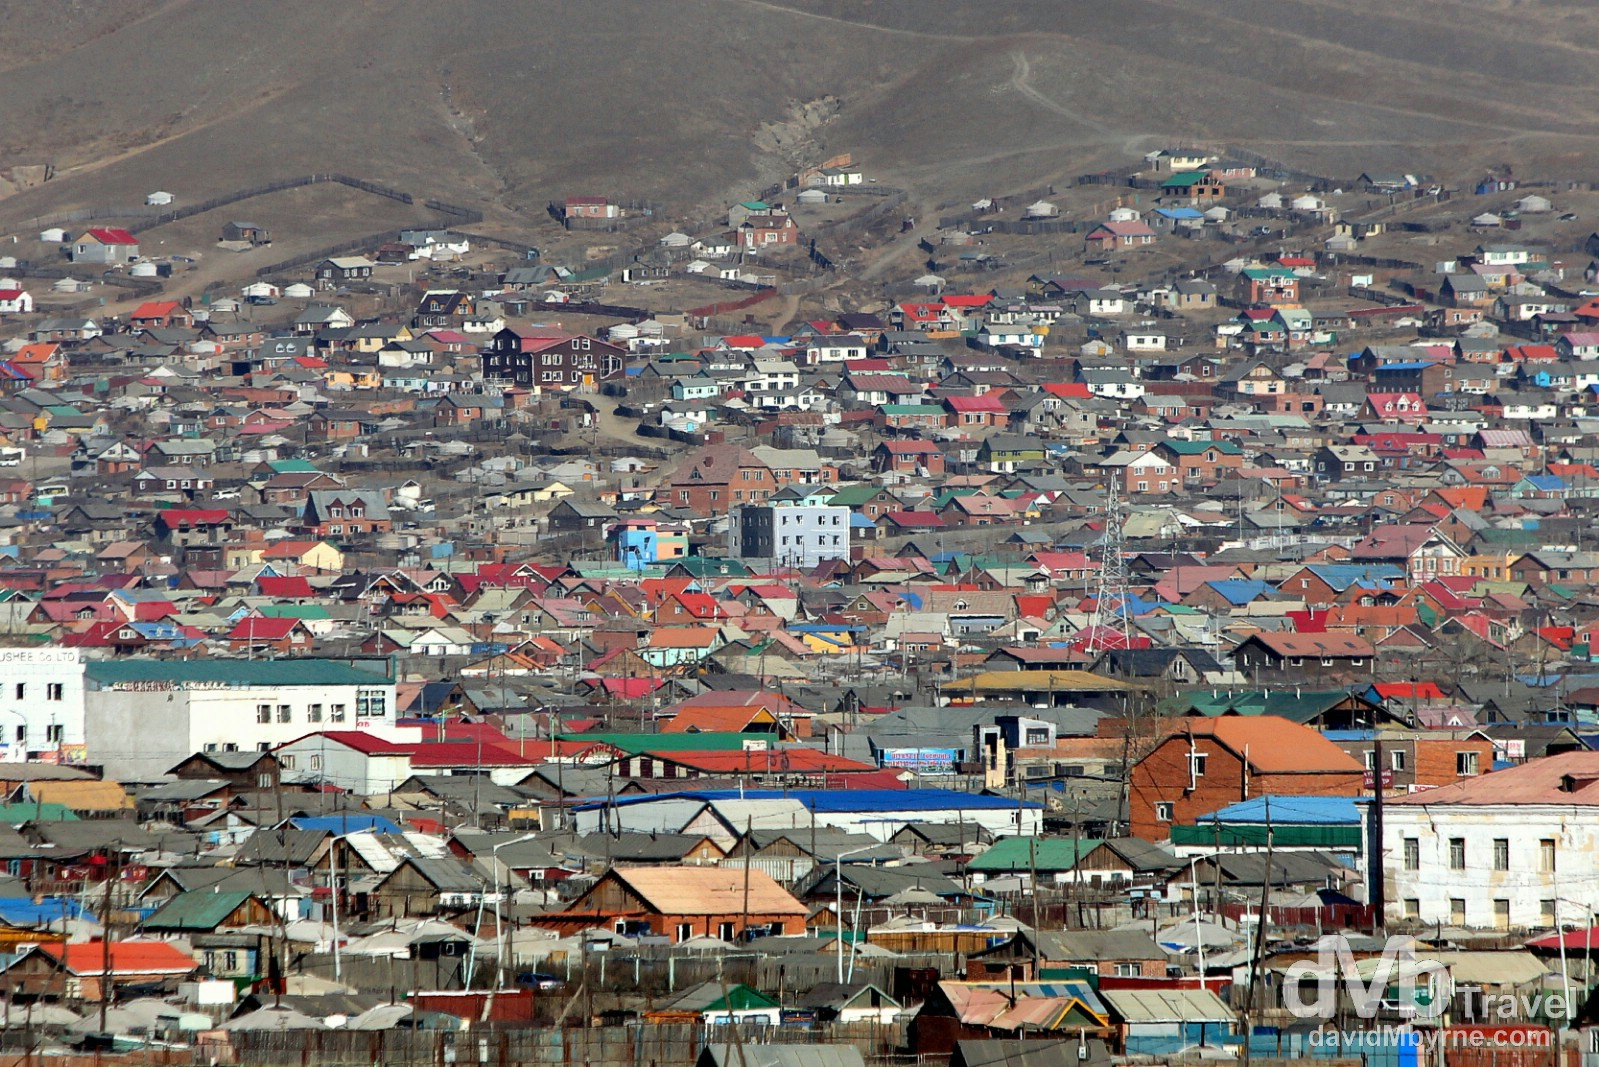 A section of Ulan Bator, Mongolia, as seen from Zaany Tolgoi, or Elephant's head, a hill overlooking the city. November 1st 2012.